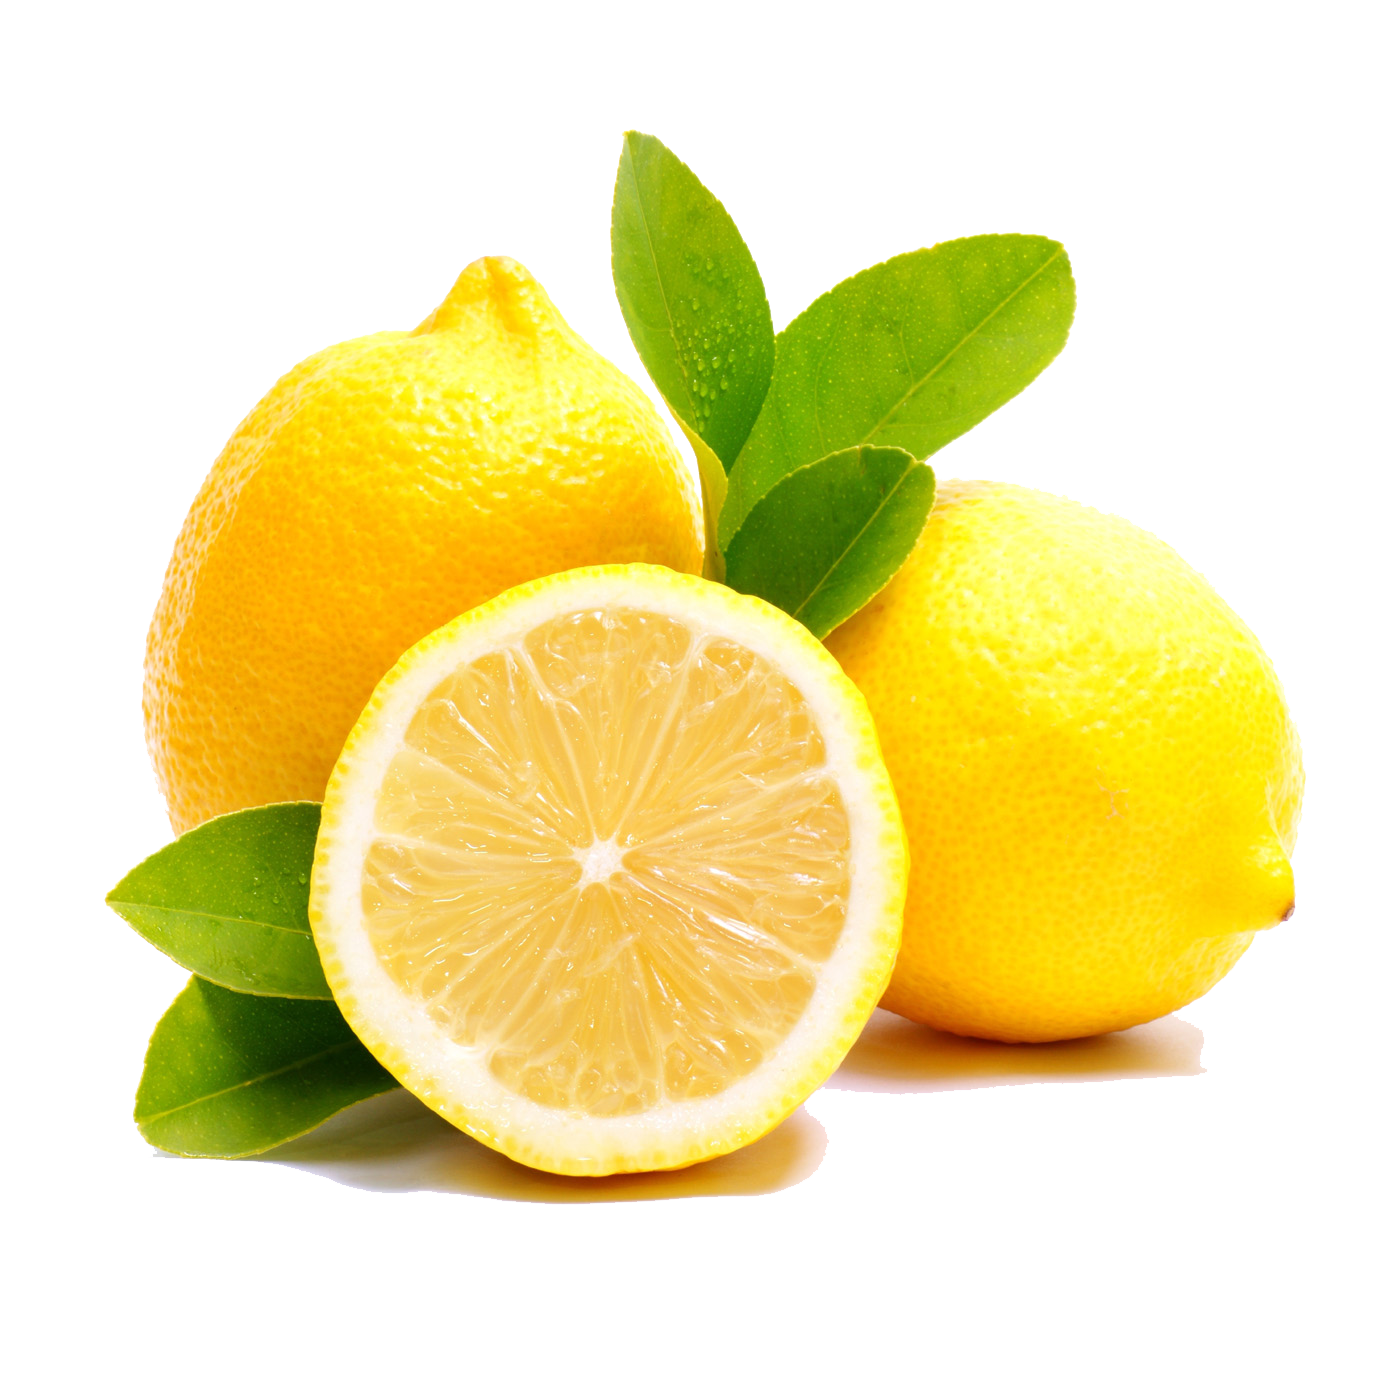 Download For Free Lemon Png In High Resolution image #38657